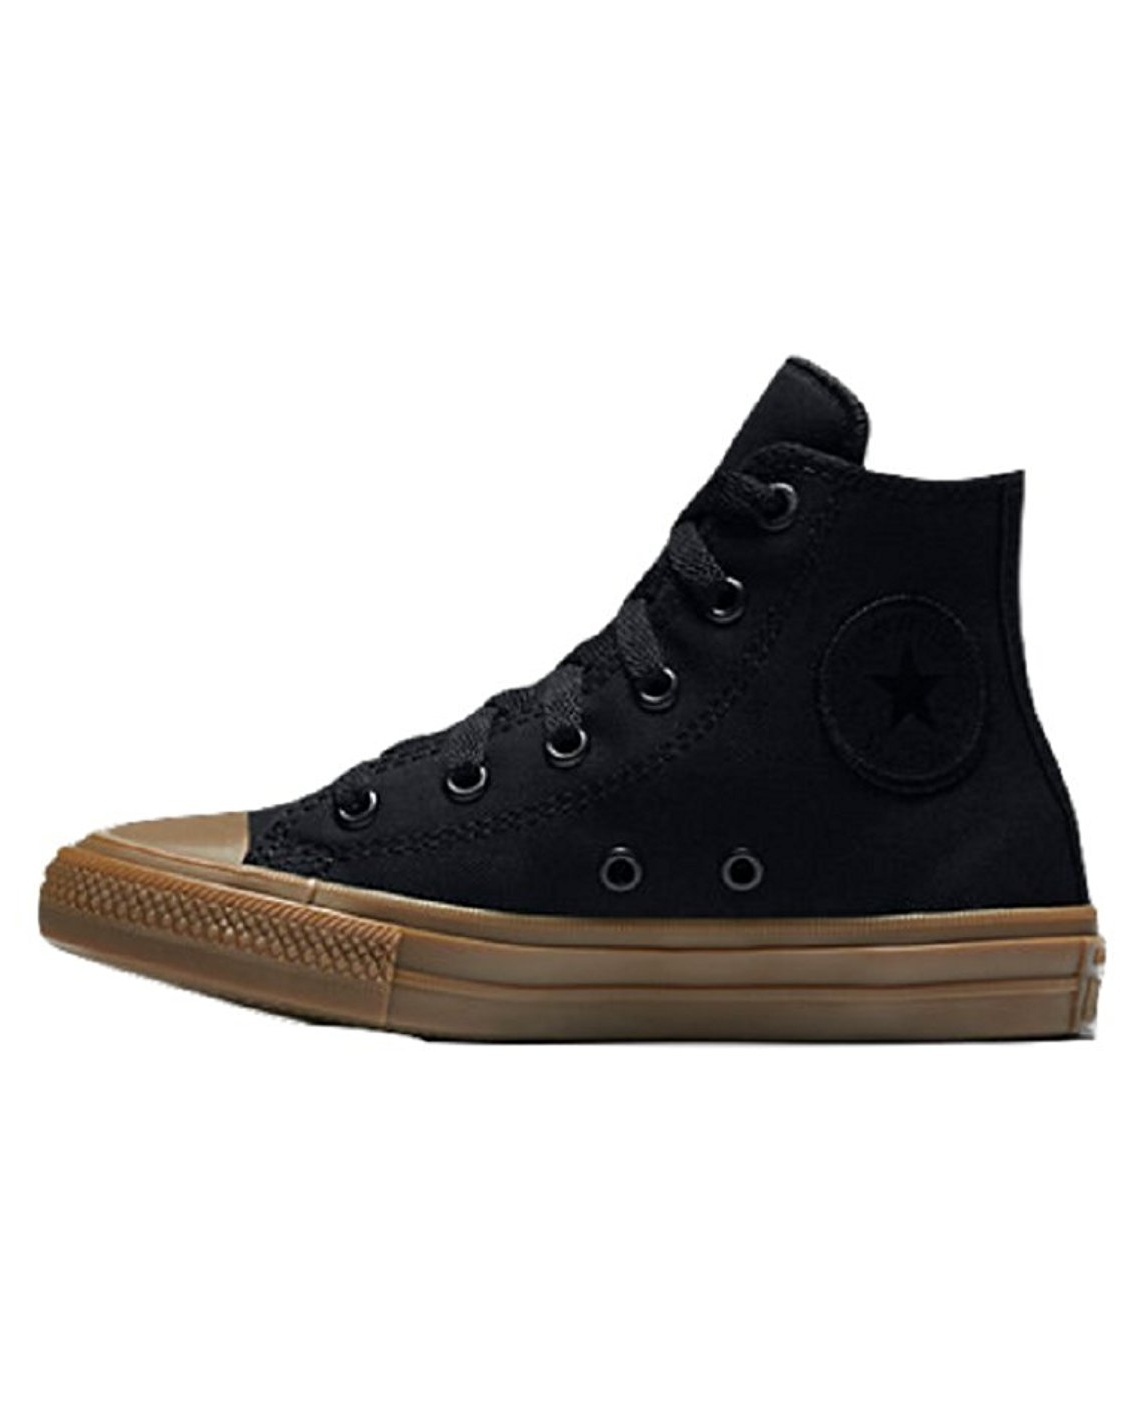 Converse (3 Little Kid M) Economical, stylish, and eye-catching shoes